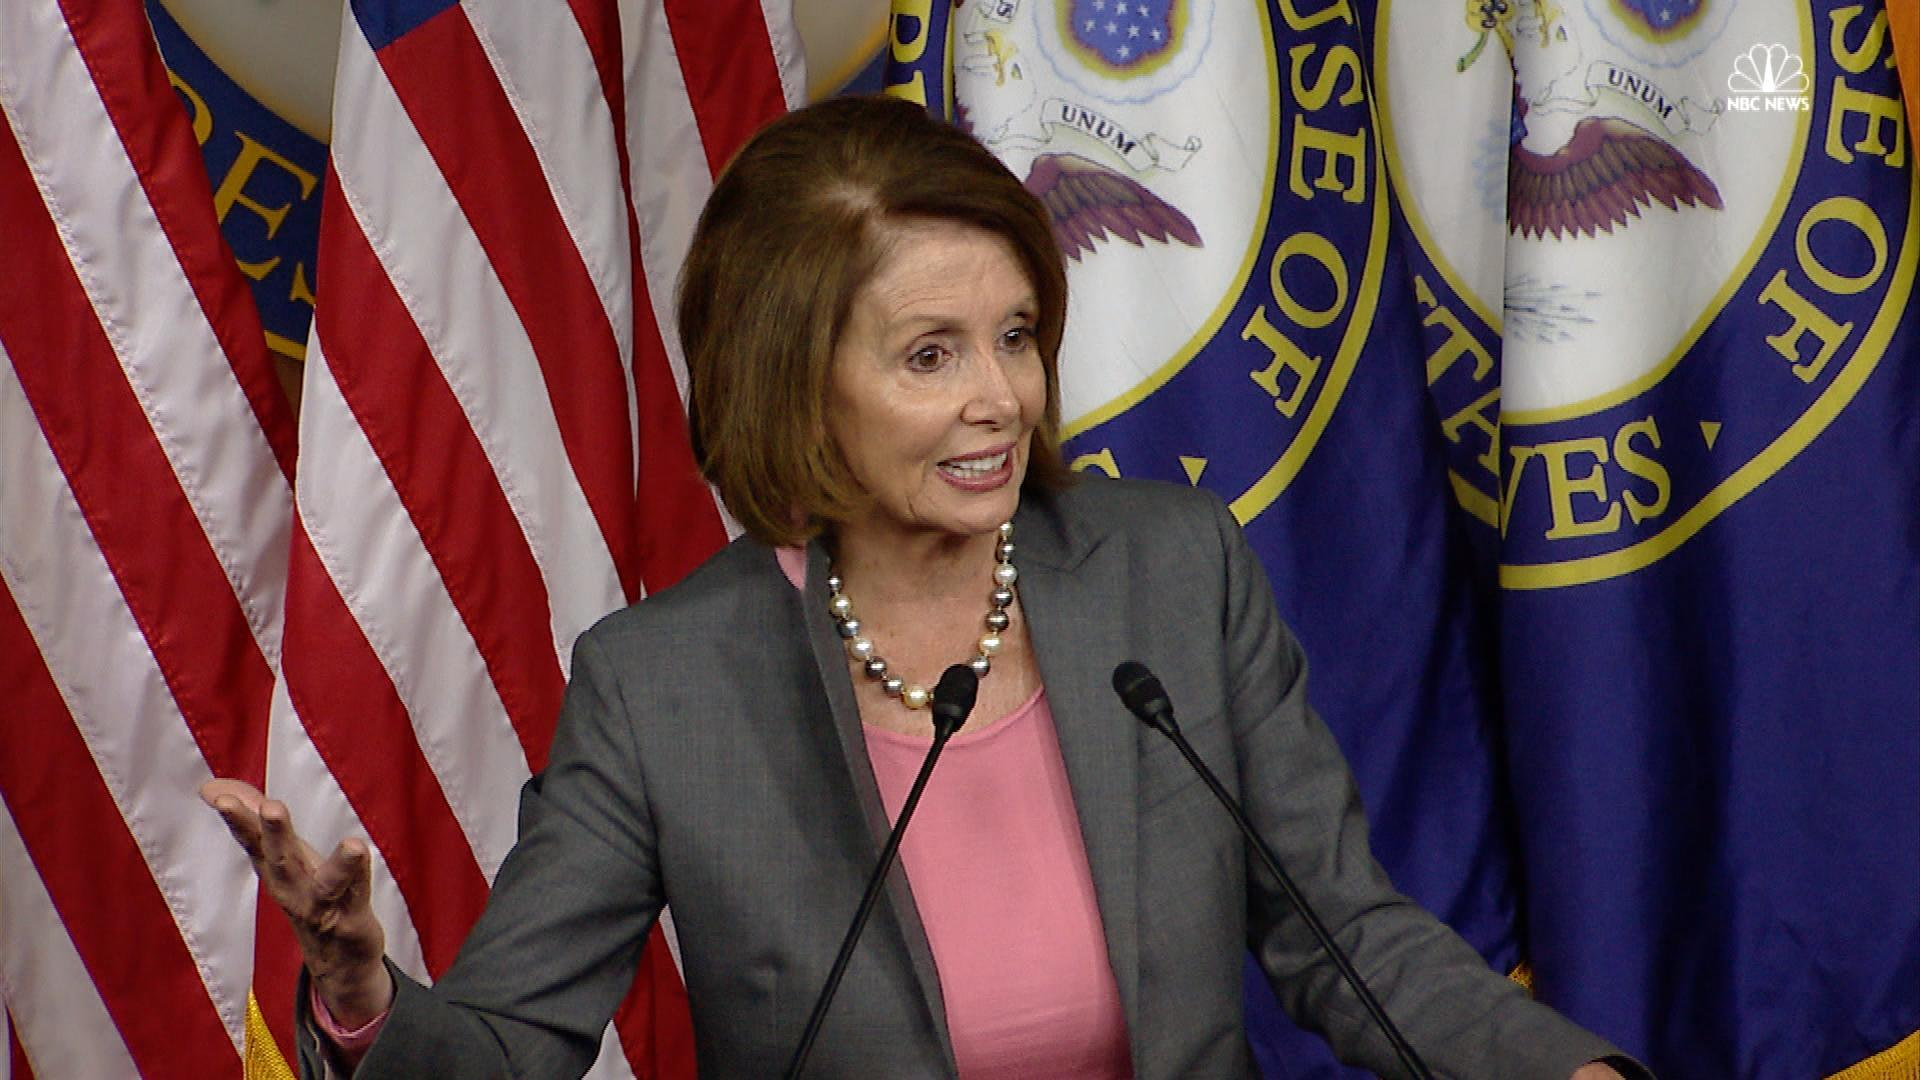 Pelosi Blames Comey Letter for Clinton Loss, Calling It A 'Foul Deed'